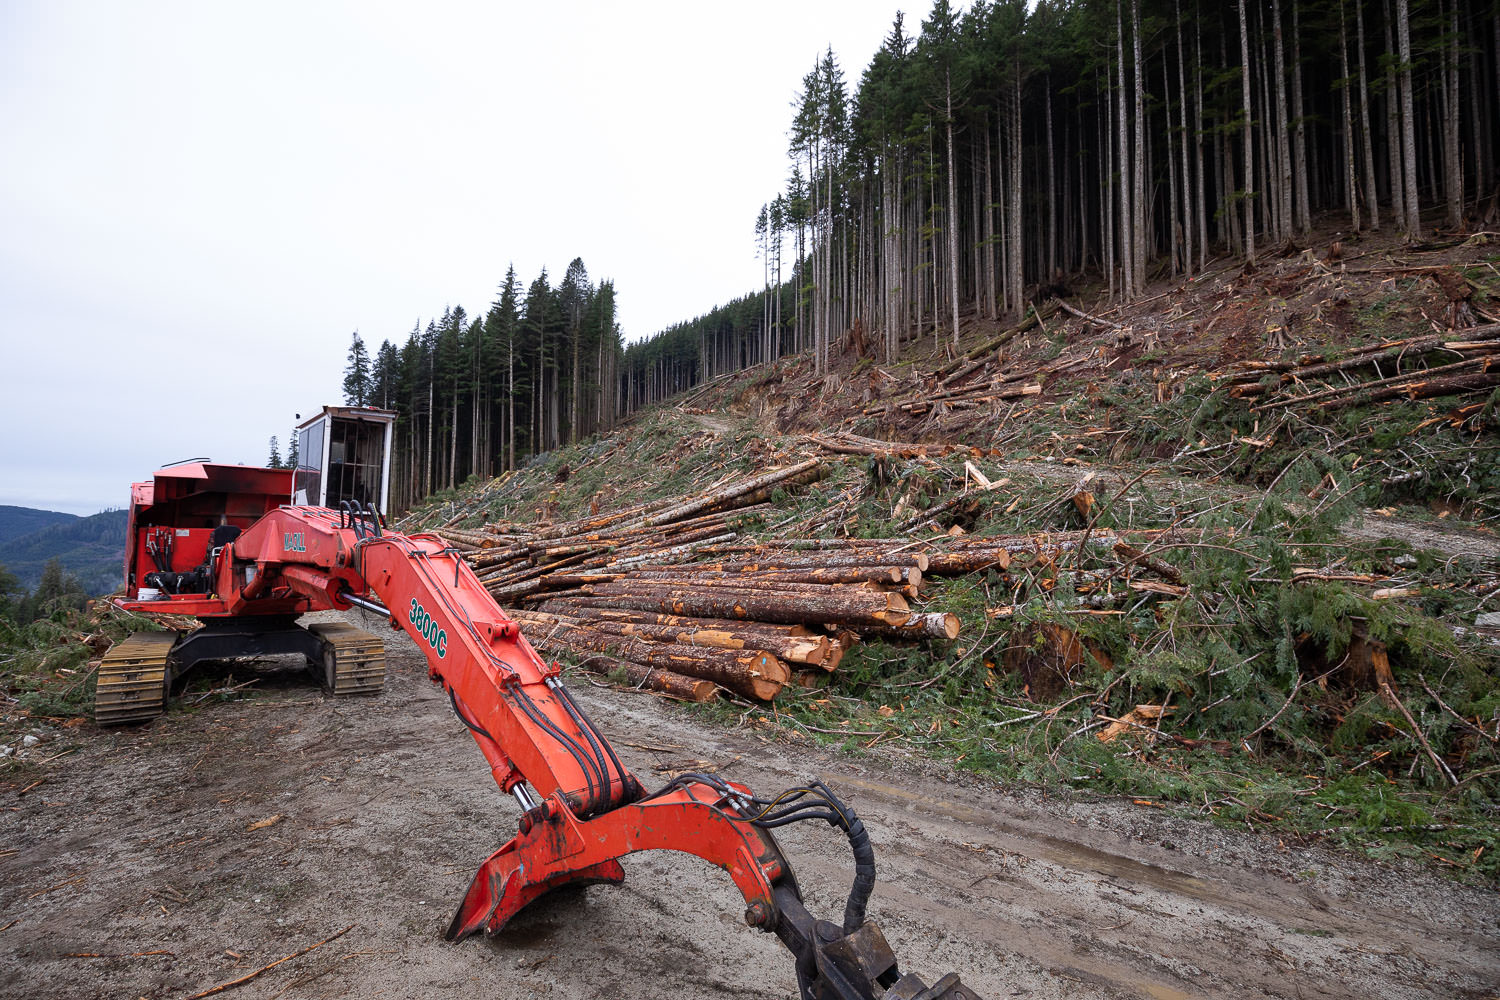 edinburgh-mt-logging-1.jpg